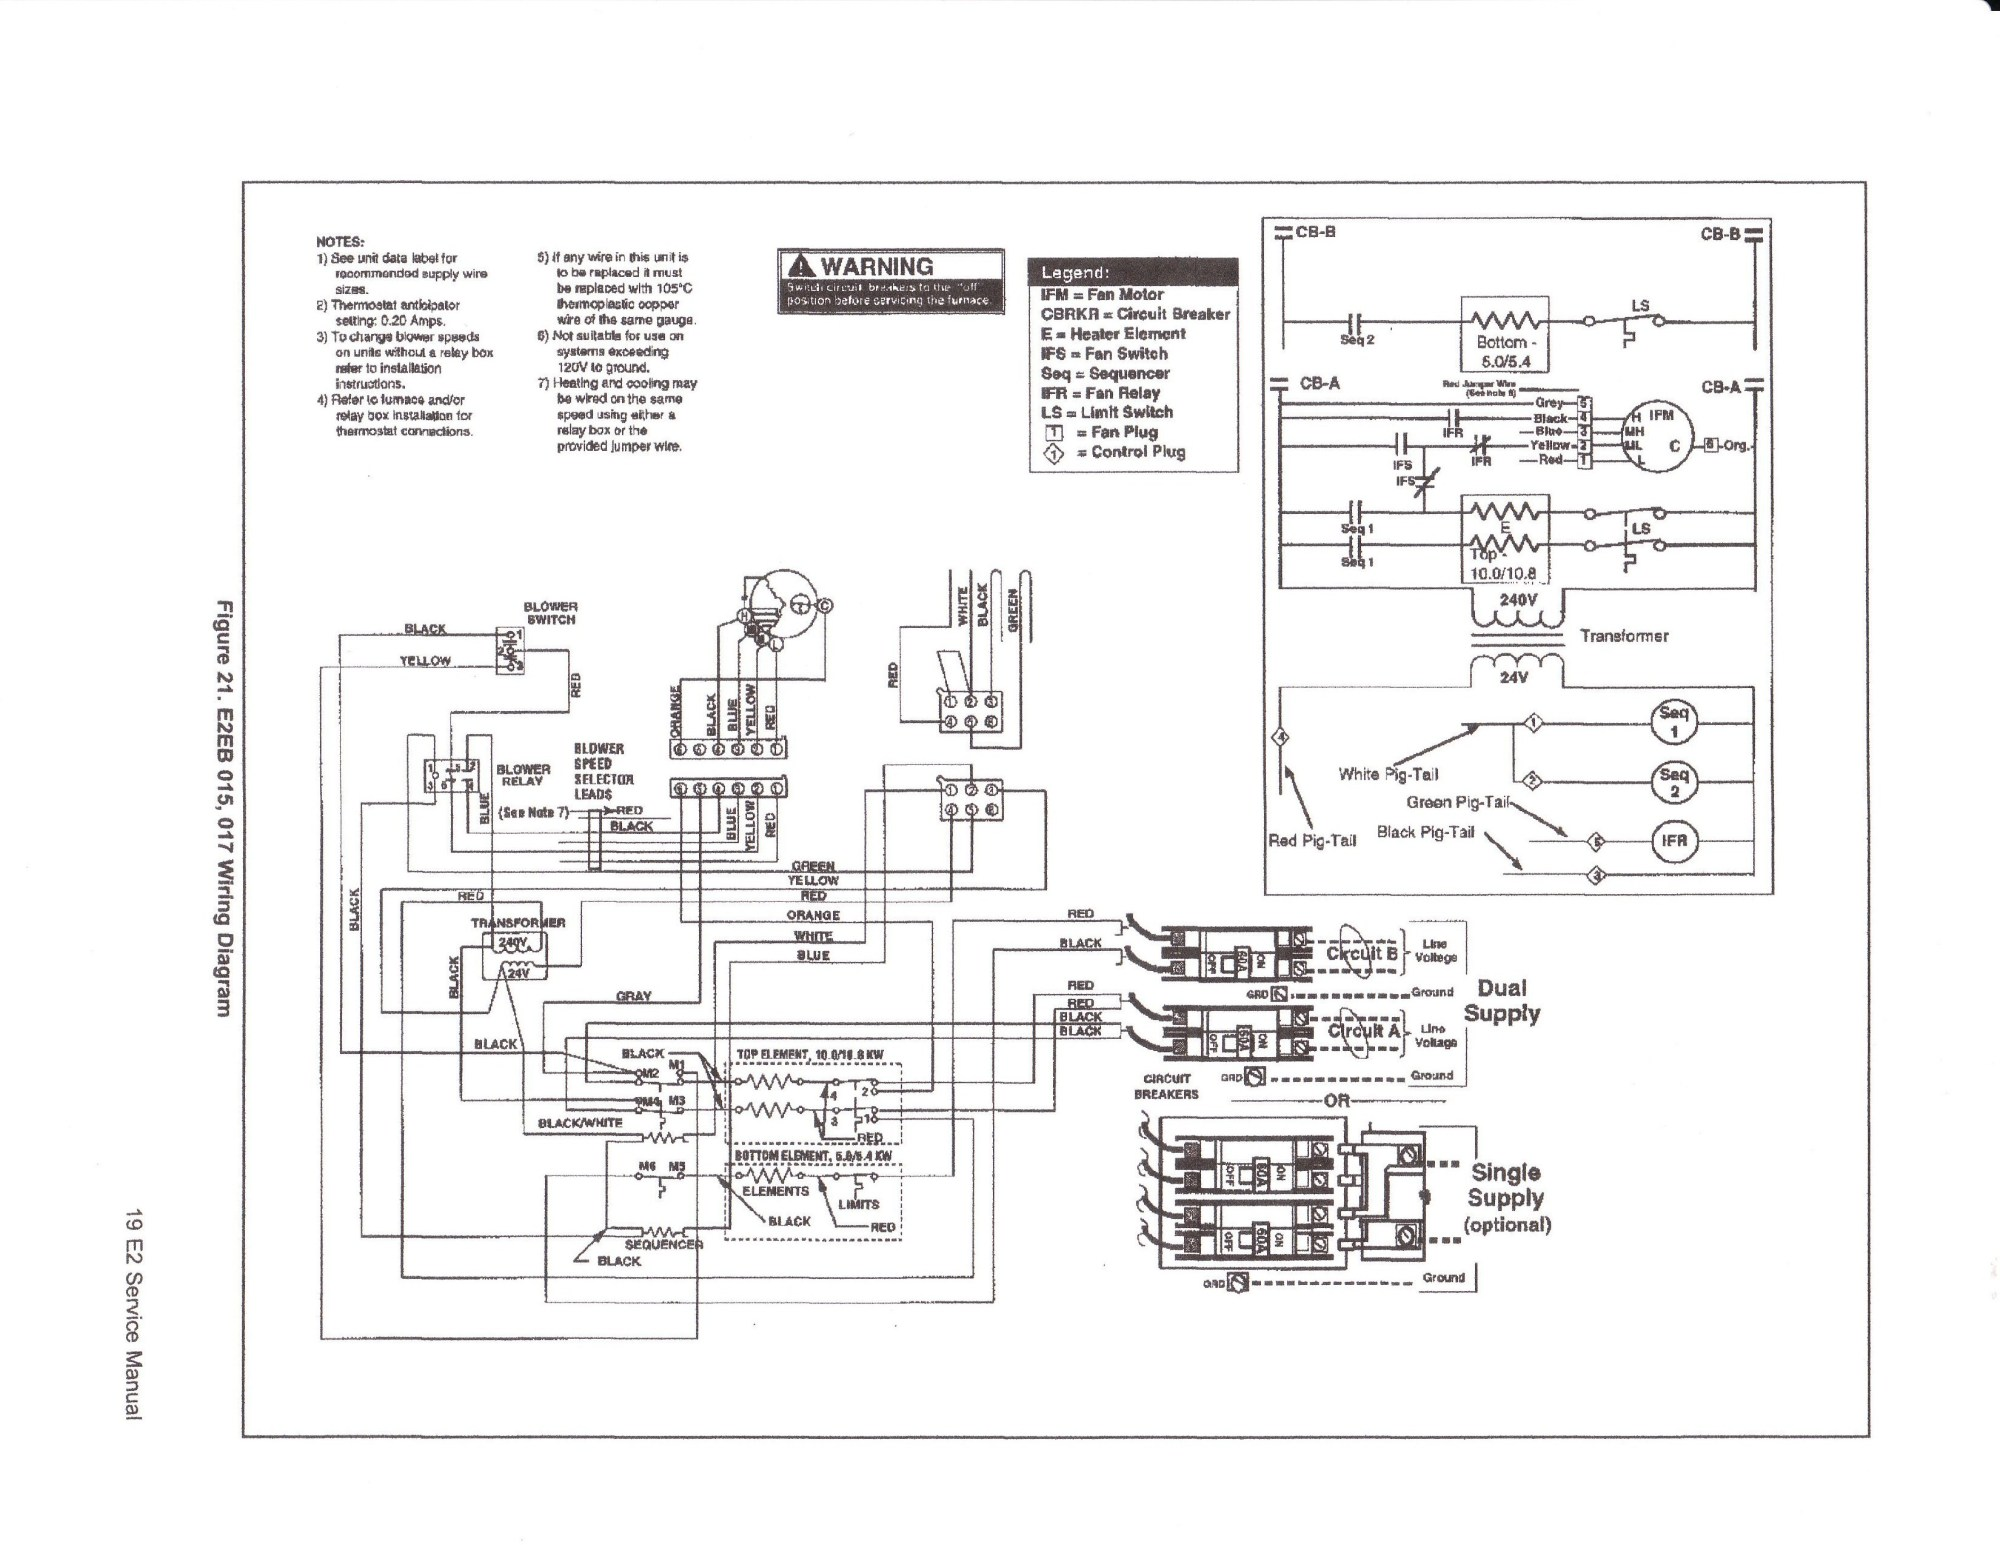 hight resolution of miller electric furnace wiring diagram wiring diagram for miller electric furnace fresh nordyne wiring diagram